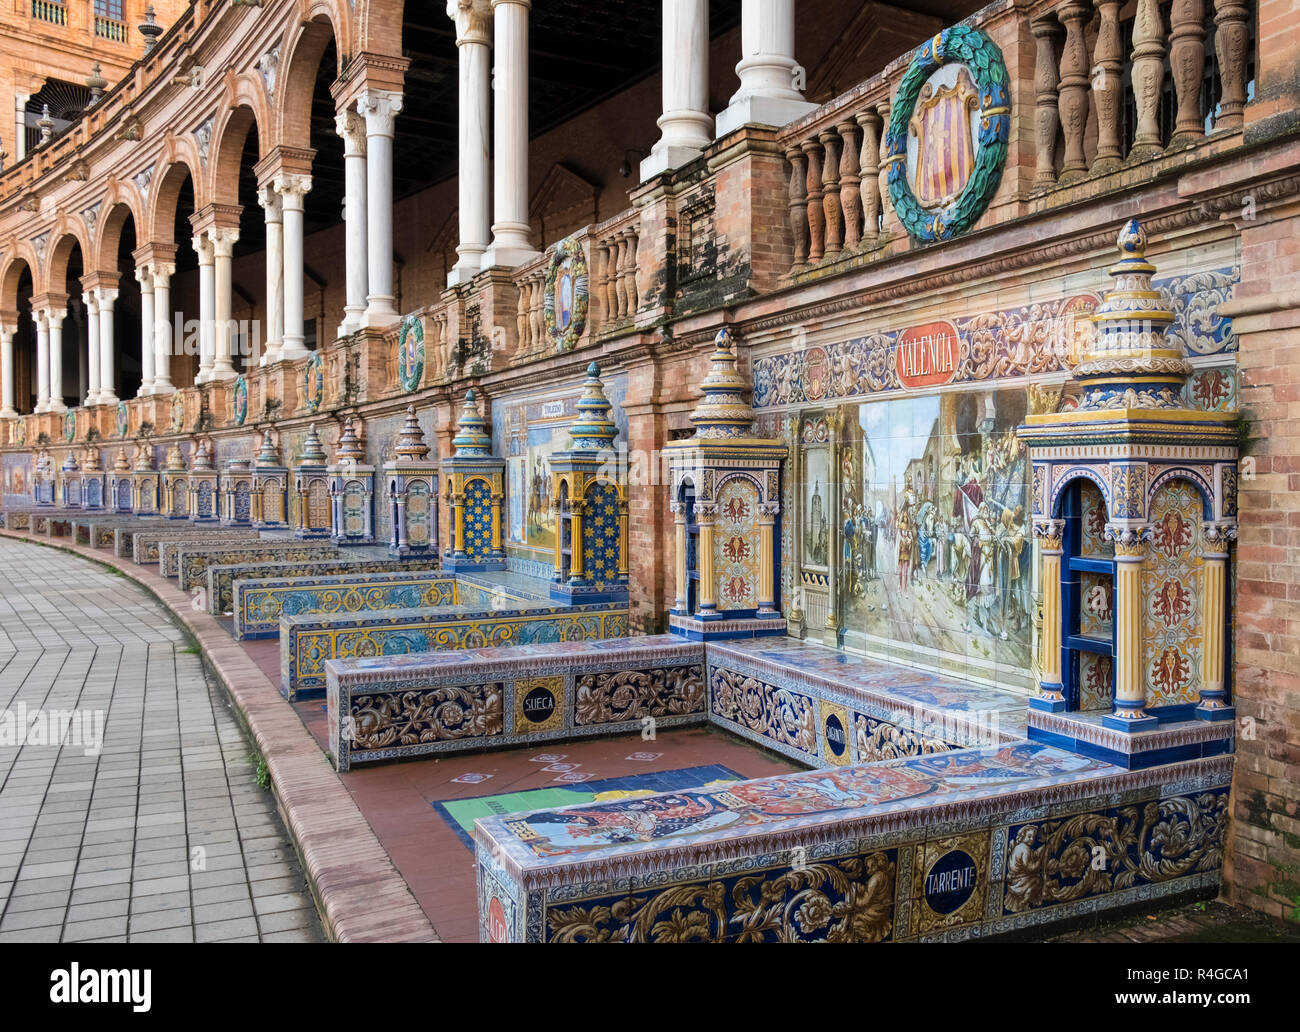 Detail of decorative azulejos tiles used for the Ibero-Americana Expo 1929 Province Alcoves at Plaza de Espana, Seville, Andalucia , Spain - Stock Image